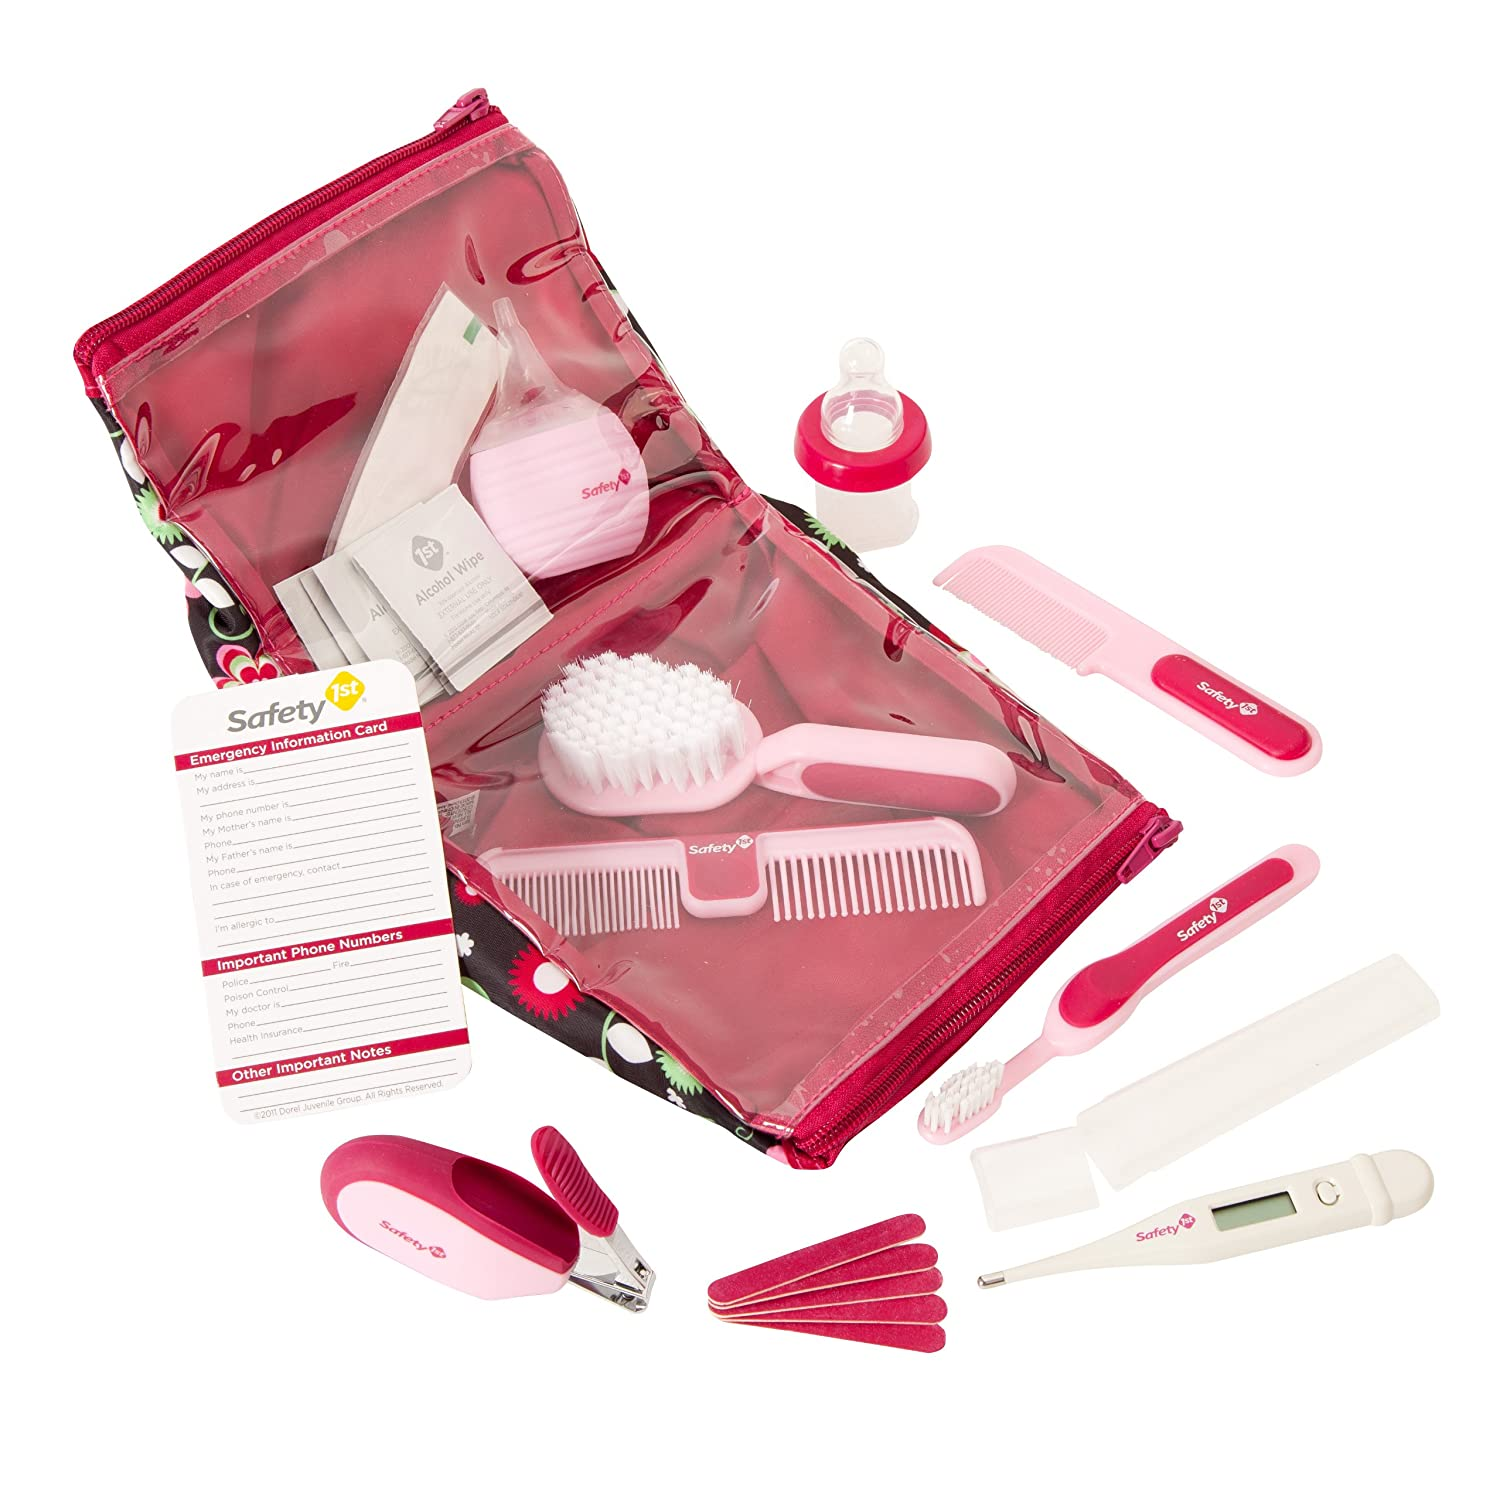 Safety 1st IH2660300 Deluxe Healthcare and Grooming Kit, Pink Dorel Juvenile Canada